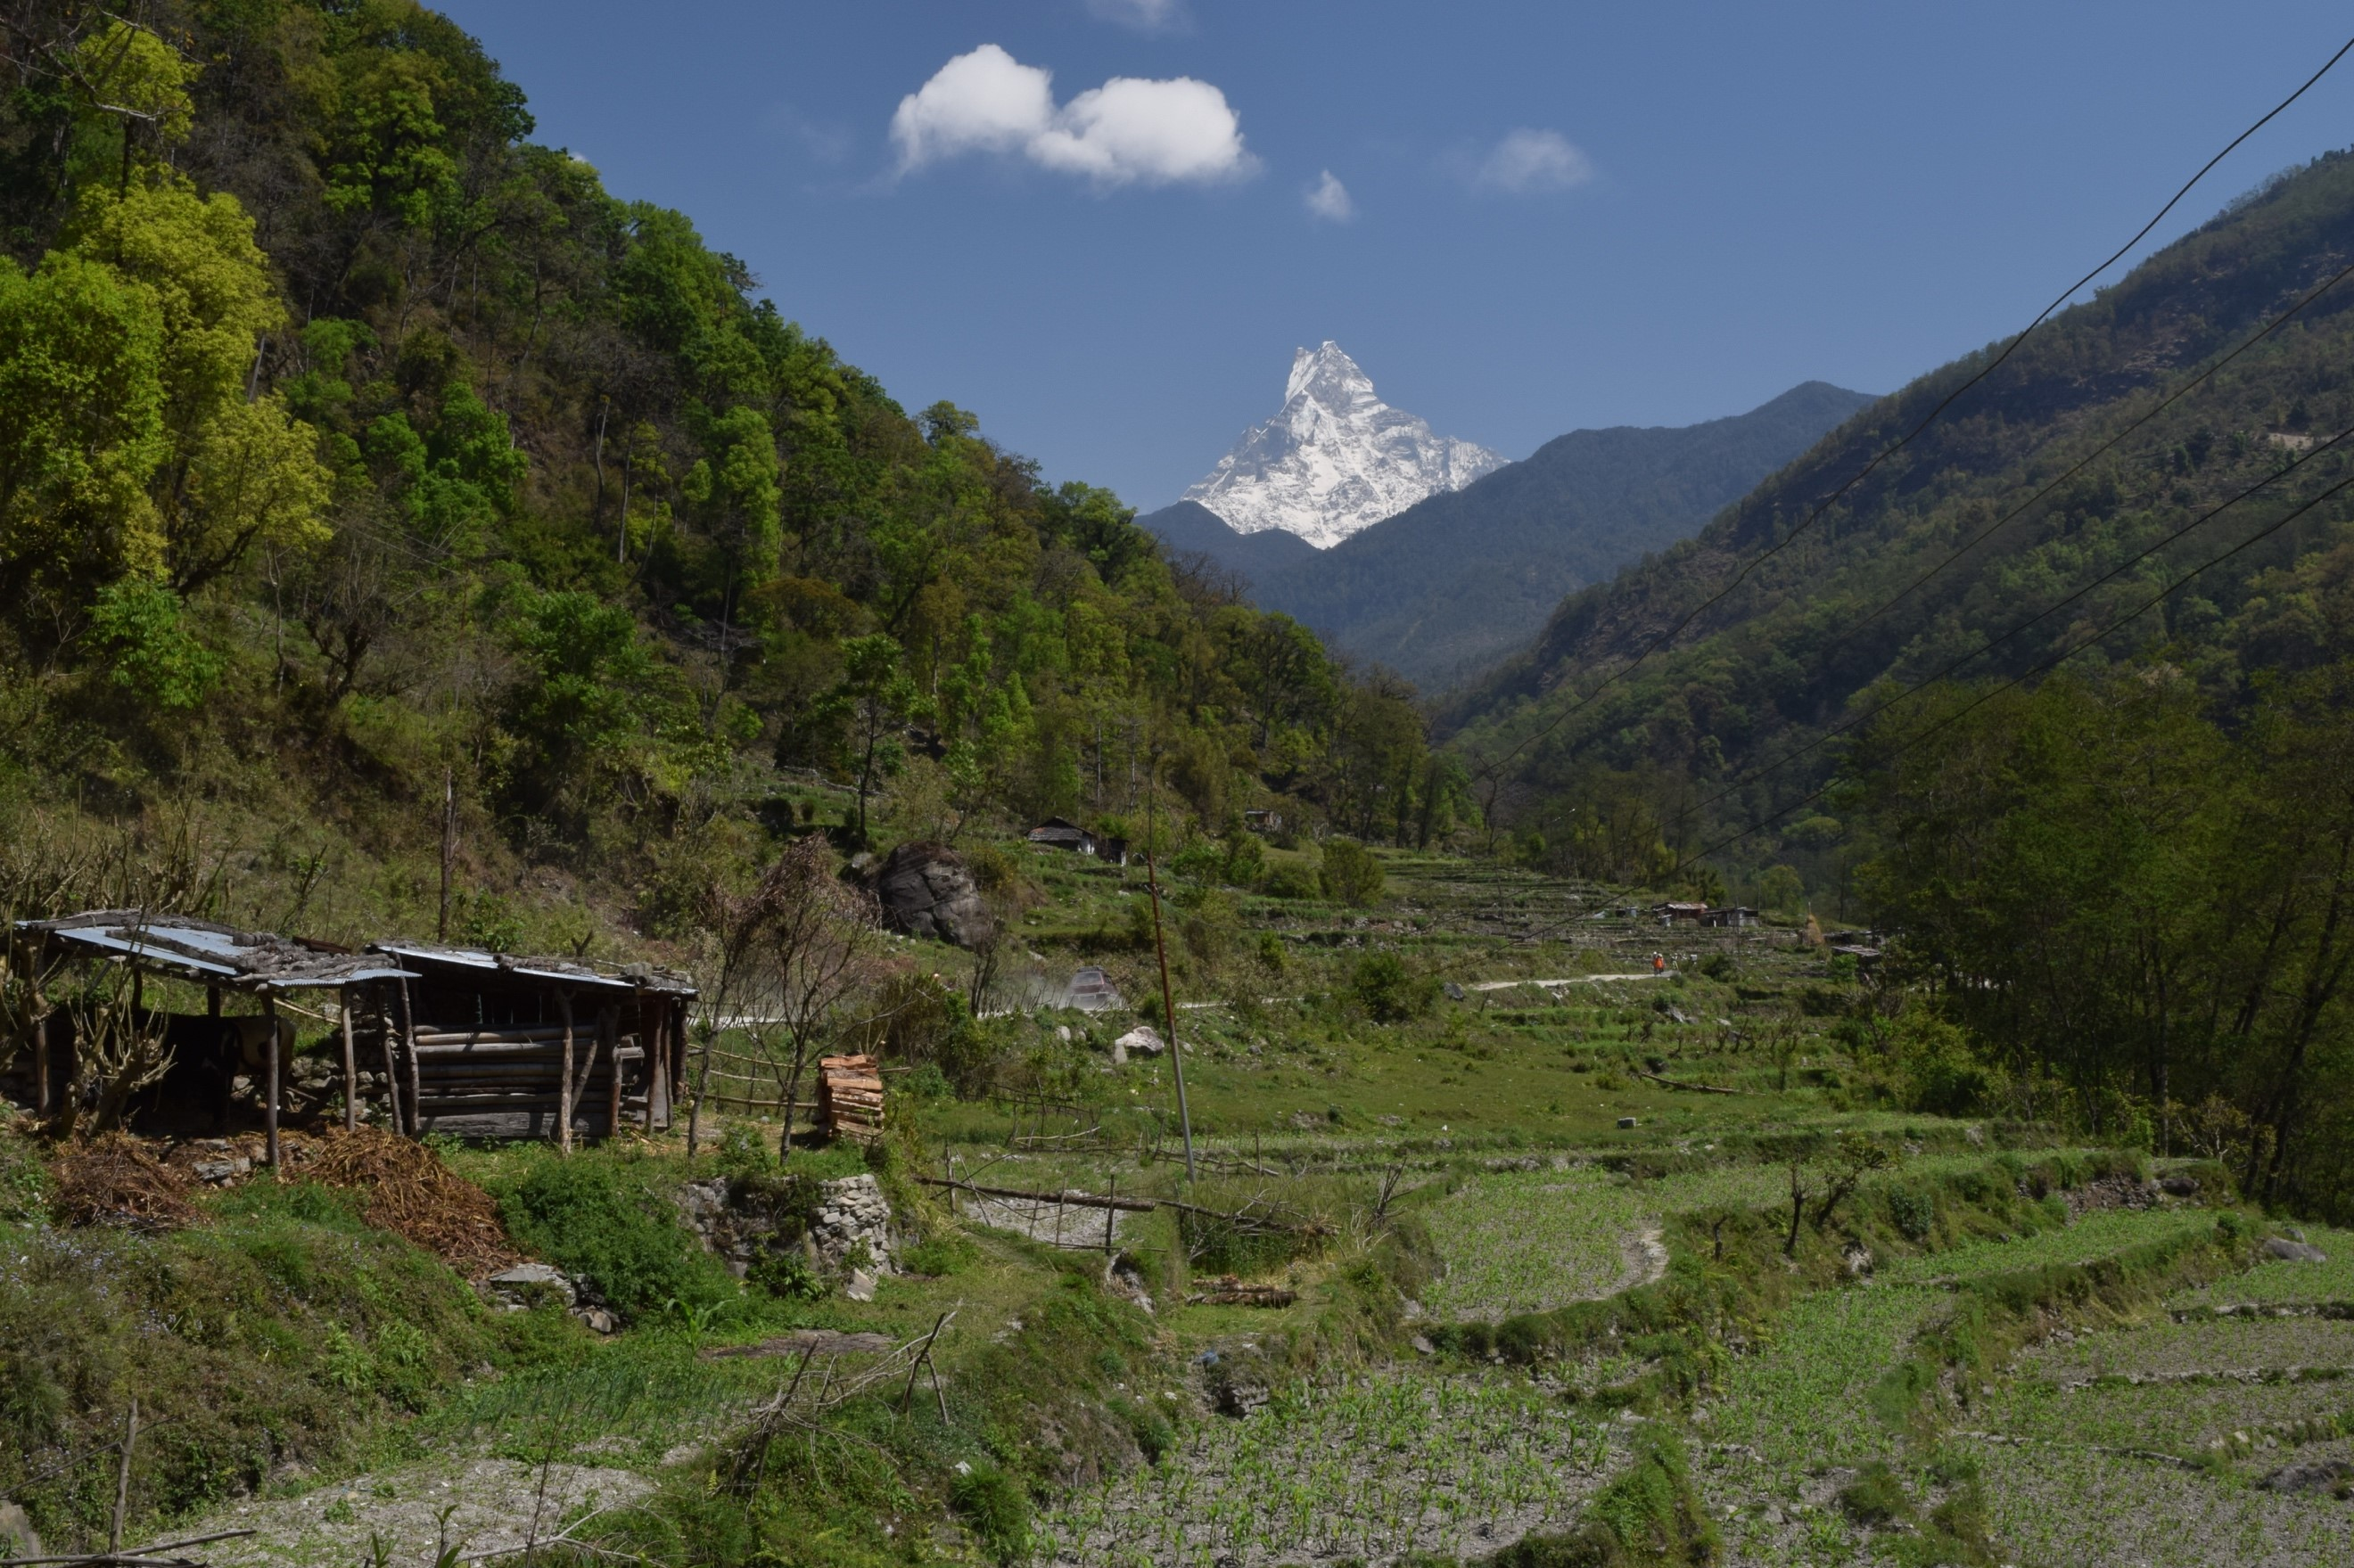 Ph.D. Research in Nepal – Part 1: Packing for Nepal